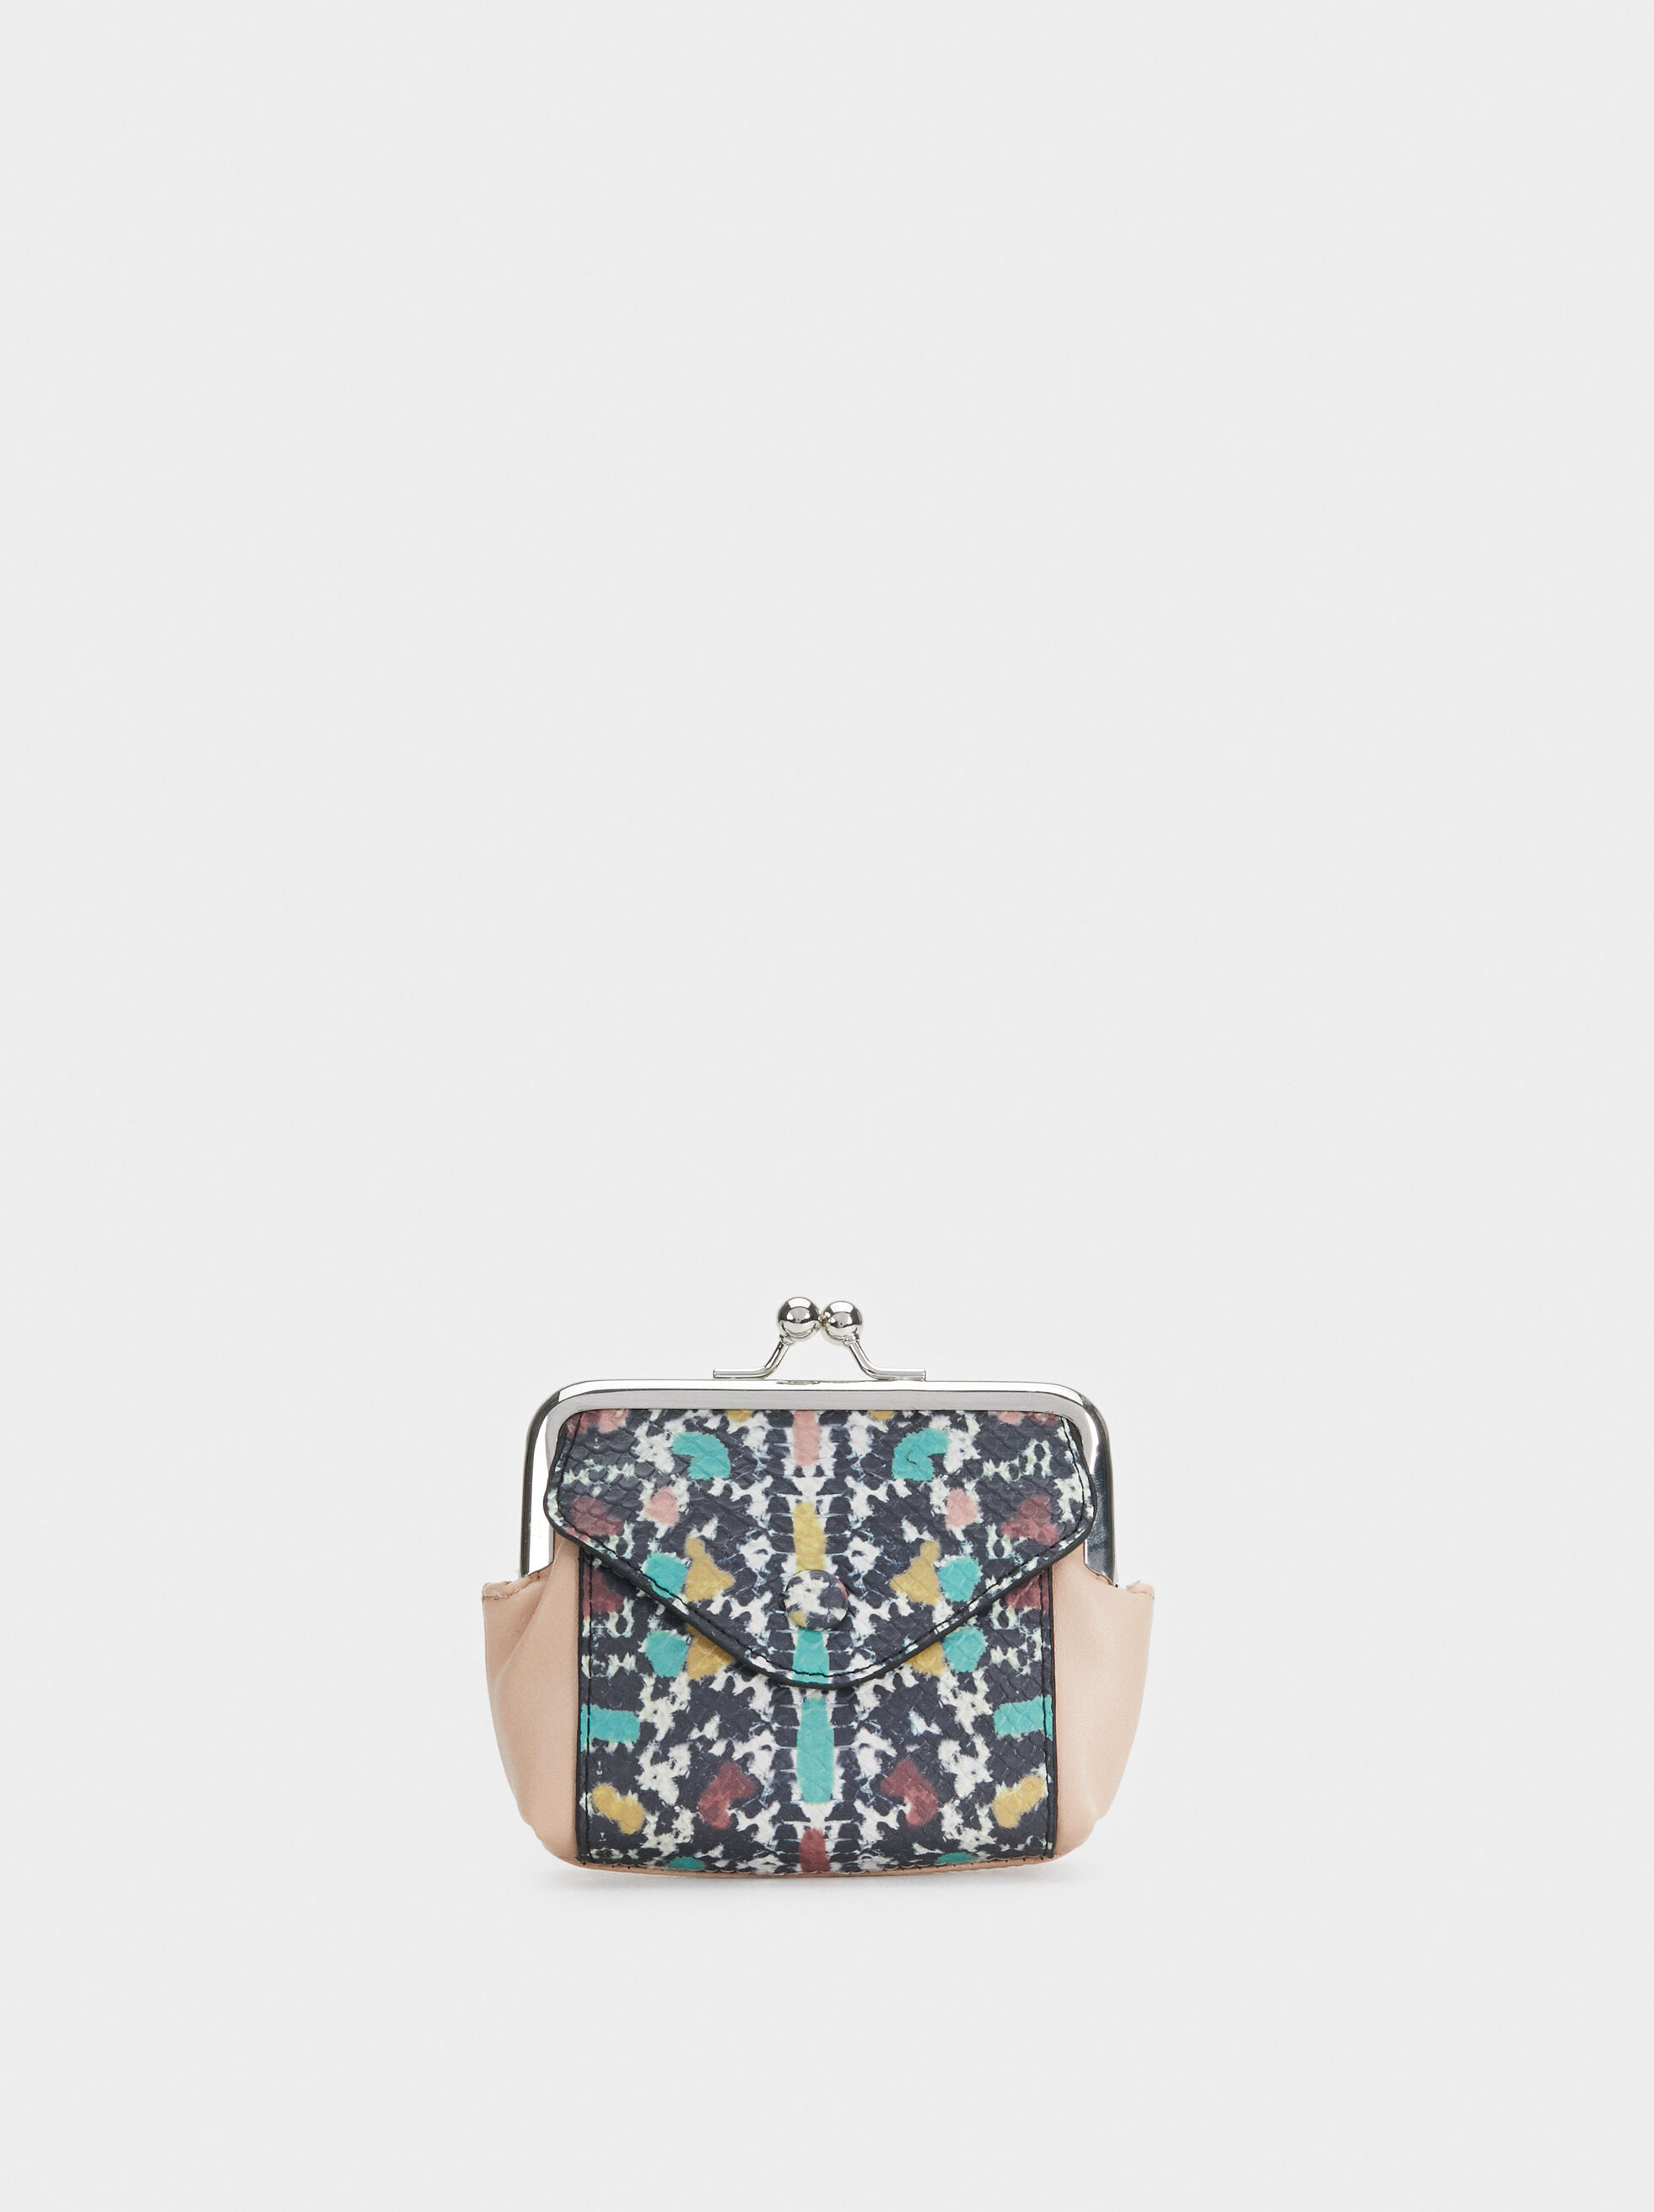 Geometric Print Purse, Black, hi-res